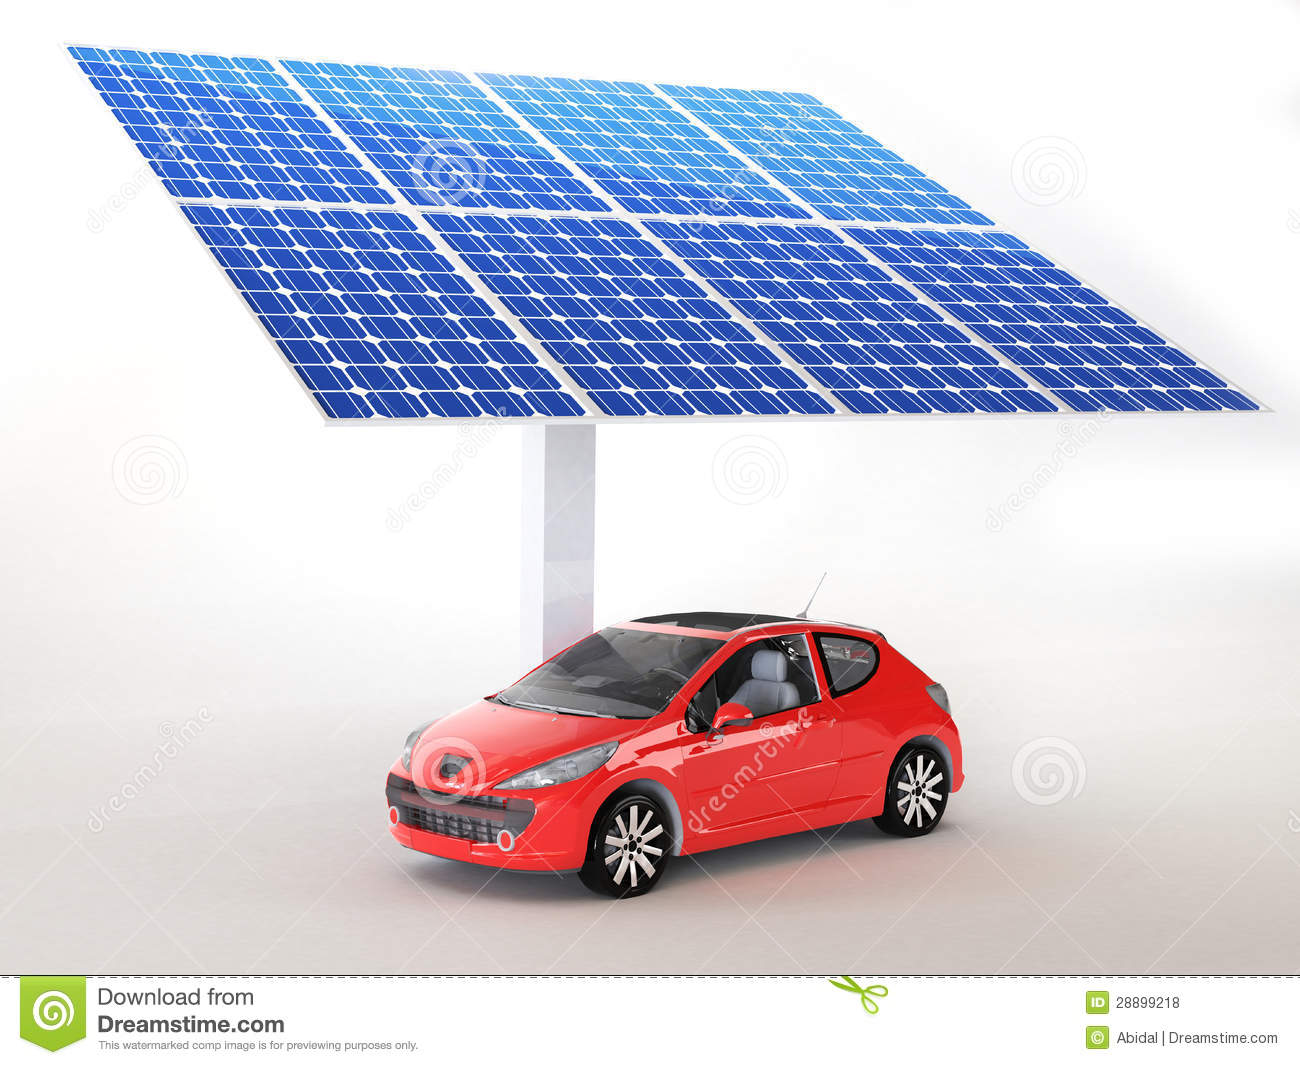 5  mon Electric Car Questions Answered together with Benefits Solar Power Infographic further Tree Shaped Wind Turbines Paris also P 02872030000P further Elf Pedal Solar Hybrid. on race car solar panels